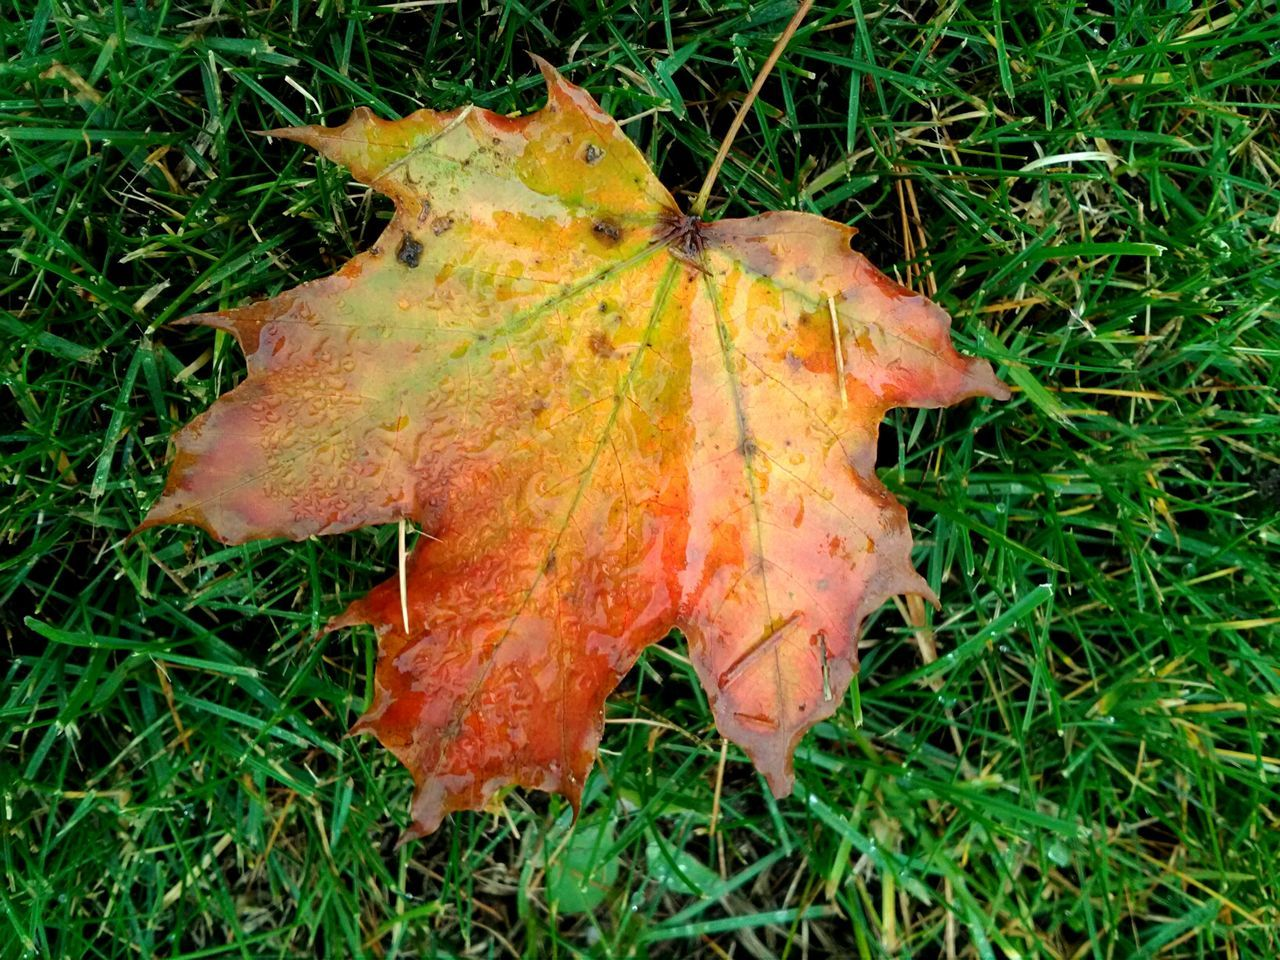 Grass High Angle View Beauty In Nature Leaf Autumn Growth Close-up Field Changing Seasons Autumn Leaves Fall Colors Fall Collection Leafporn Loving Nature's Beauty Autumn🍁🍁🍁 Outdoor Photography Nature On Your Doorstep Maple Hello World ✌ Fallen Leaves Leafs Photography 2016♡ Outdoorlife My Backyard Check This Out 😊